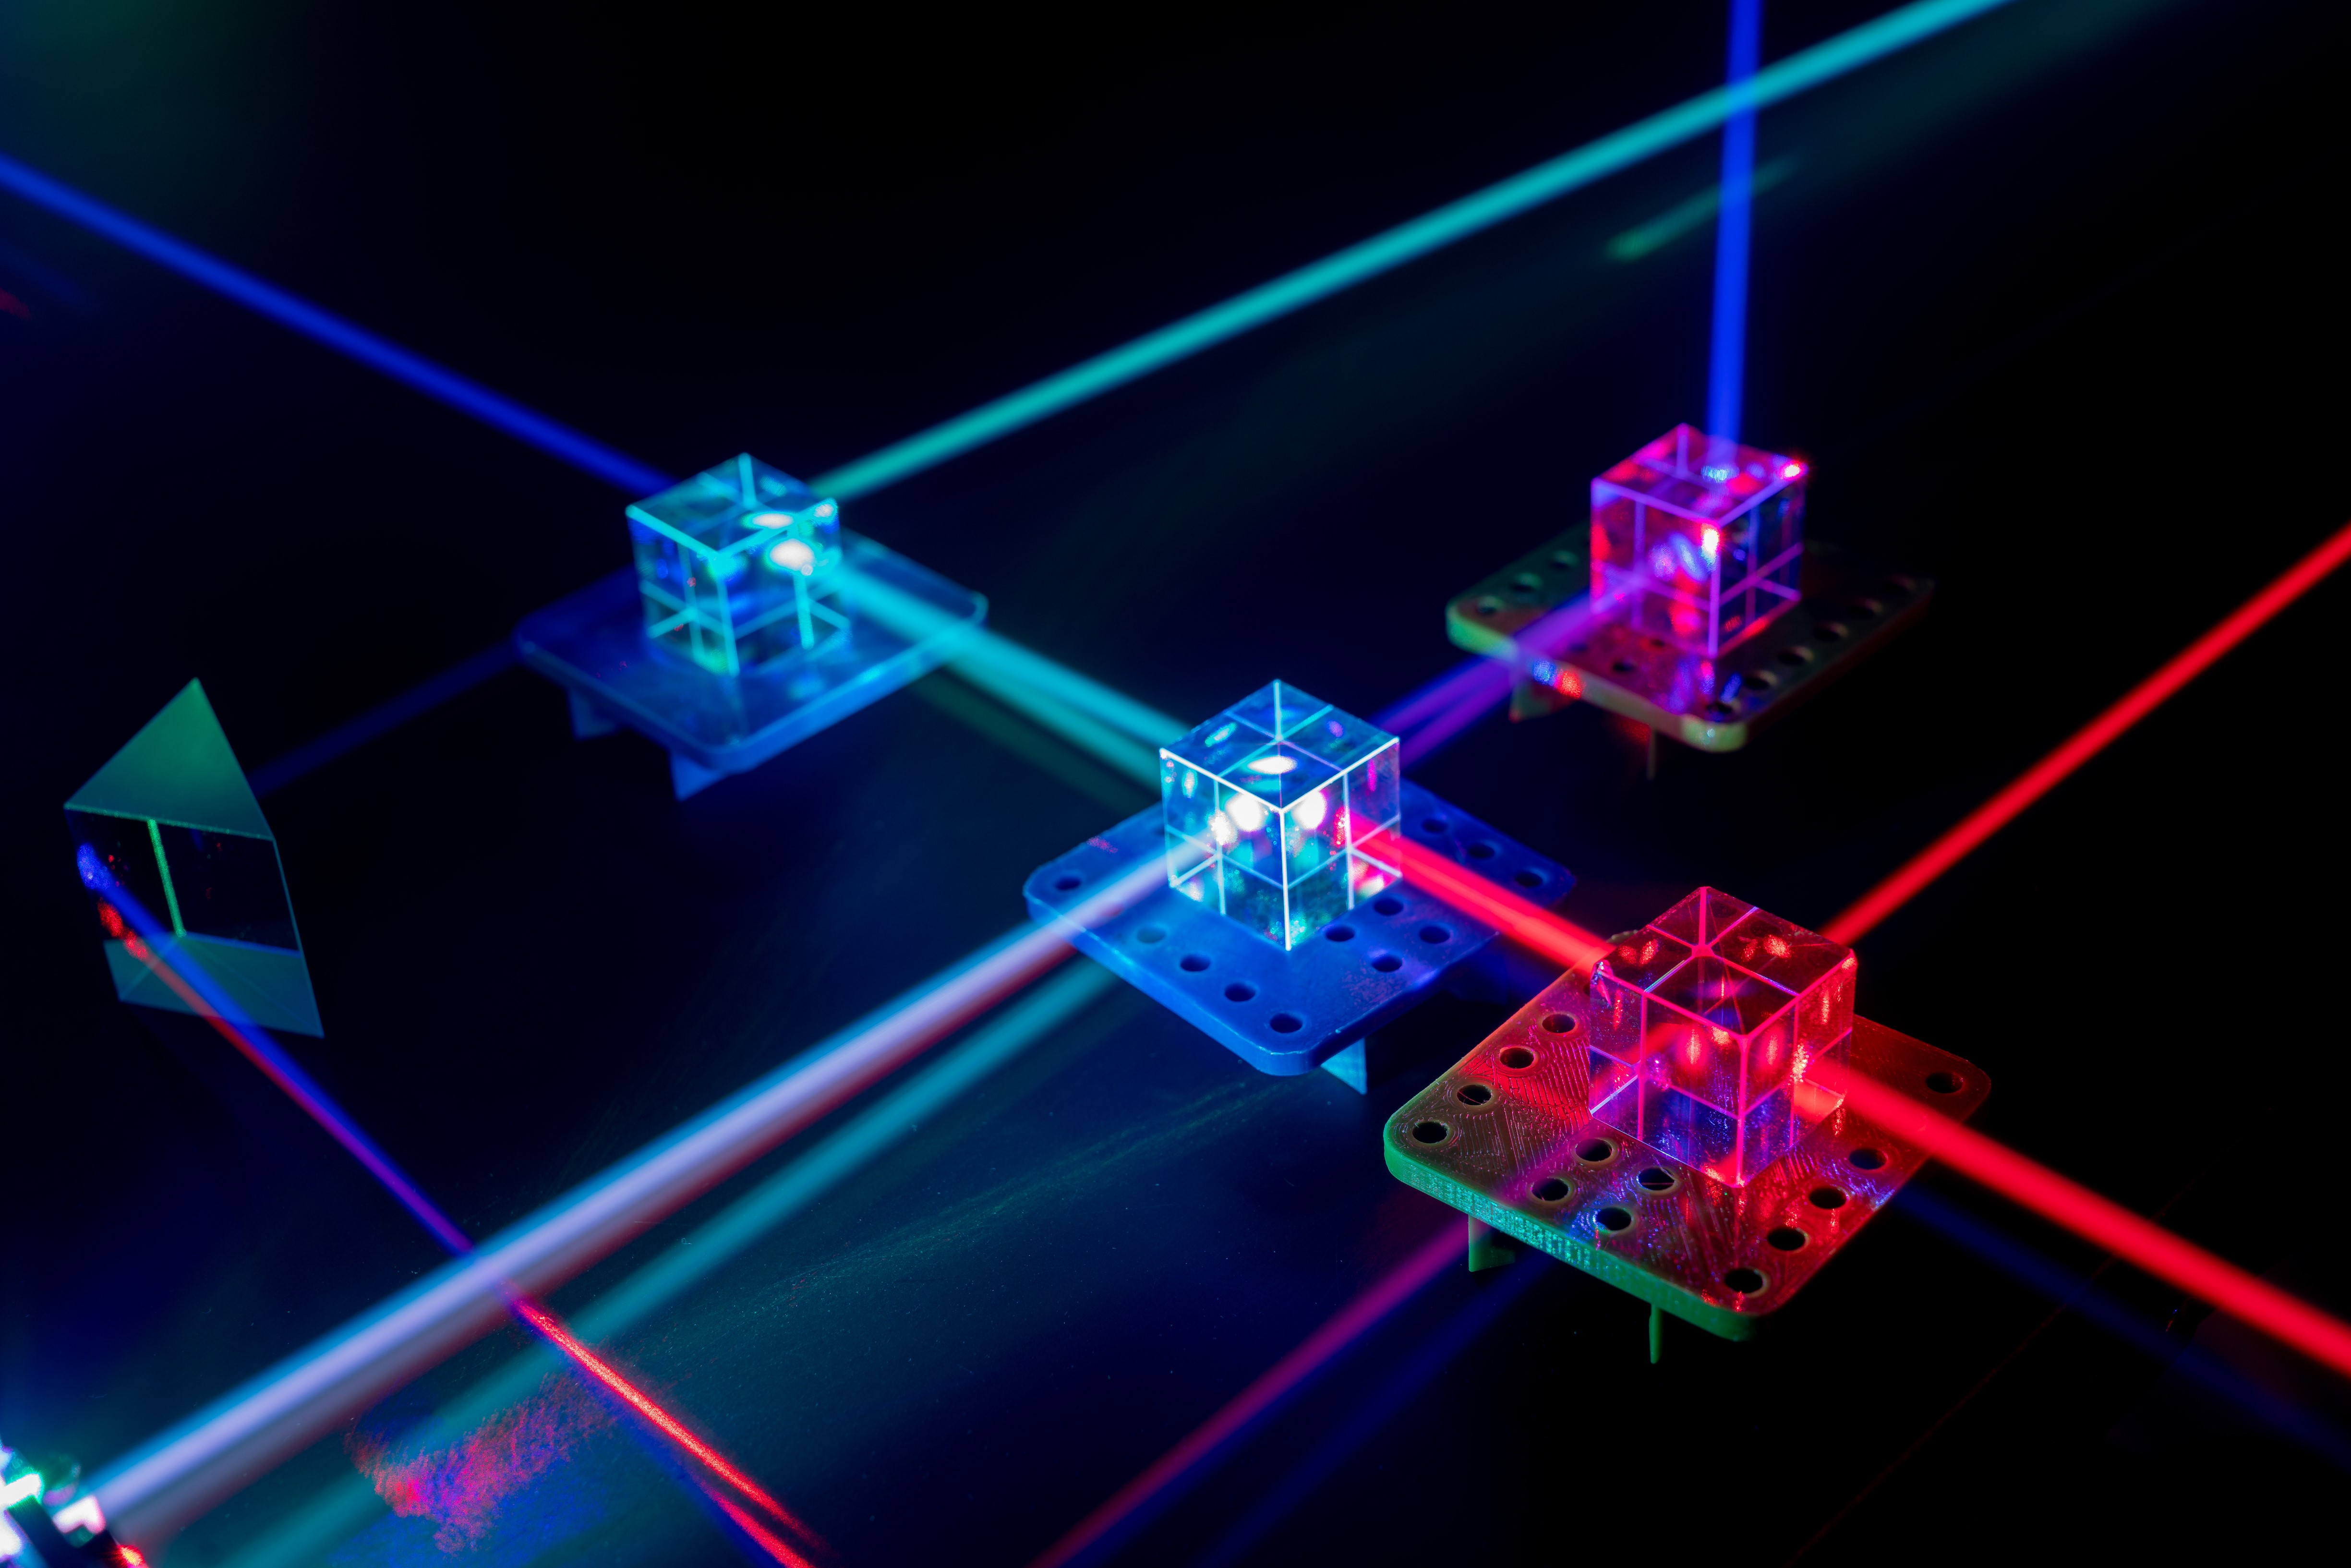 the science of manipulating light, can lead to the development of advanced optical devices, but the efficient generation of photons has remained a challenge until now